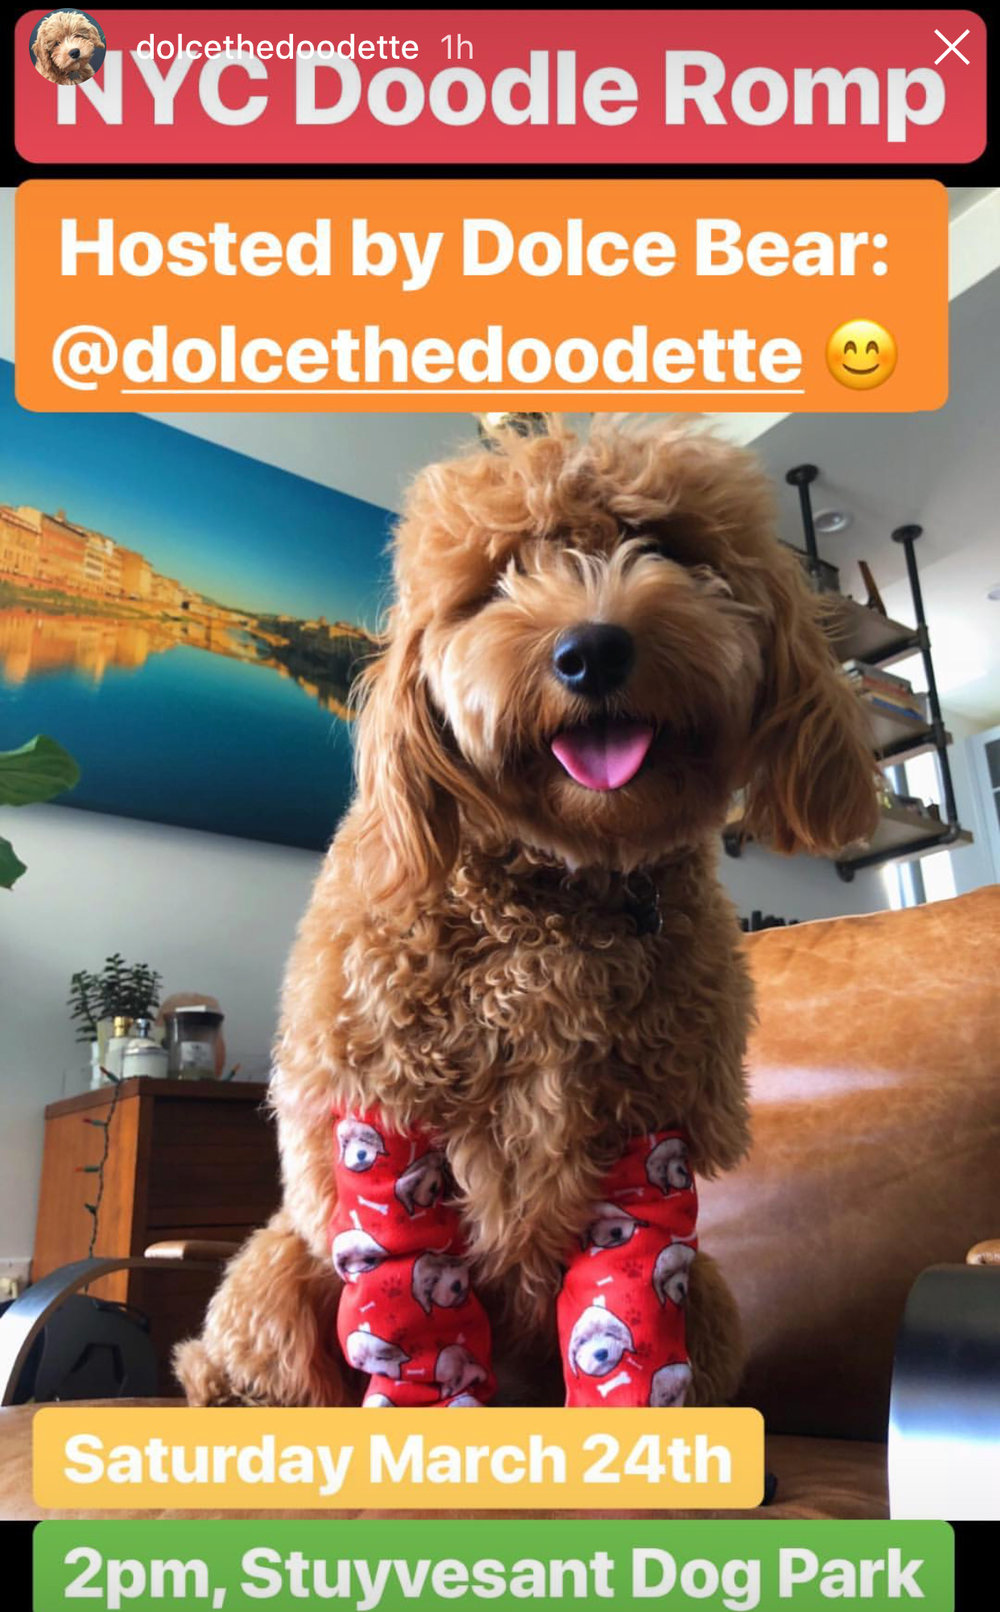 Calendar paw ty girls dolcethedoodettes nyc doodle romp will be on saturday march 24th at 2 pm at stuyvesant dog park solutioingenieria Gallery